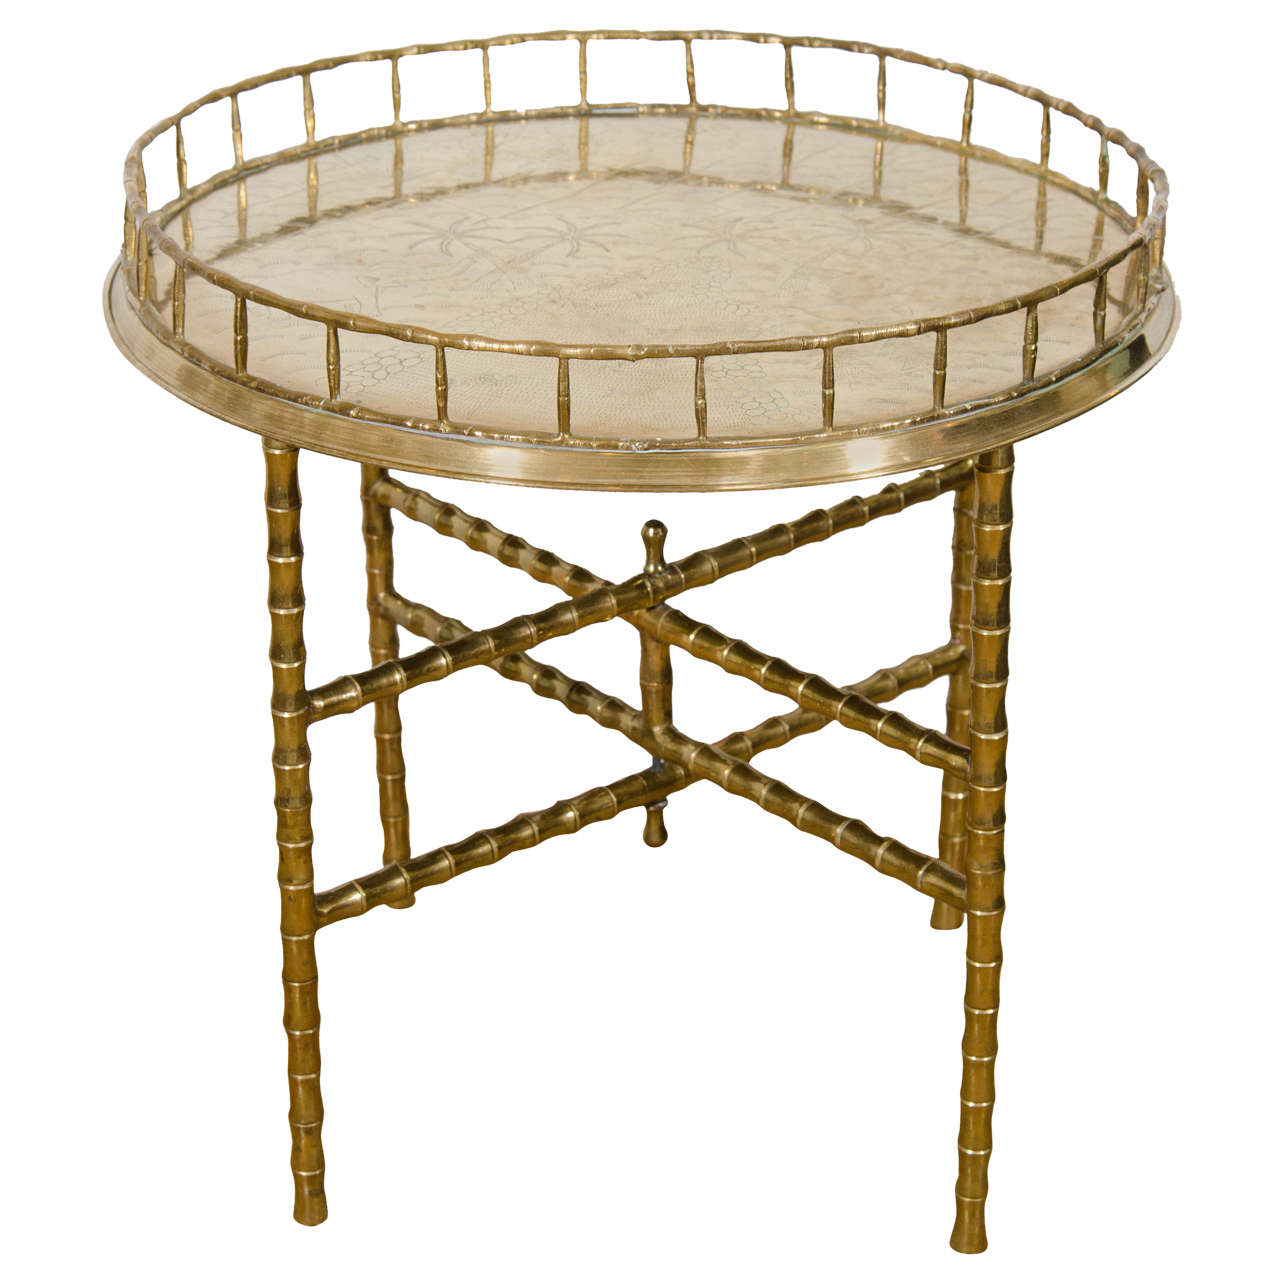 Captivating Midcentury Faux Bamboo, Circular Brass Tray With Folding Table Or Stand 1